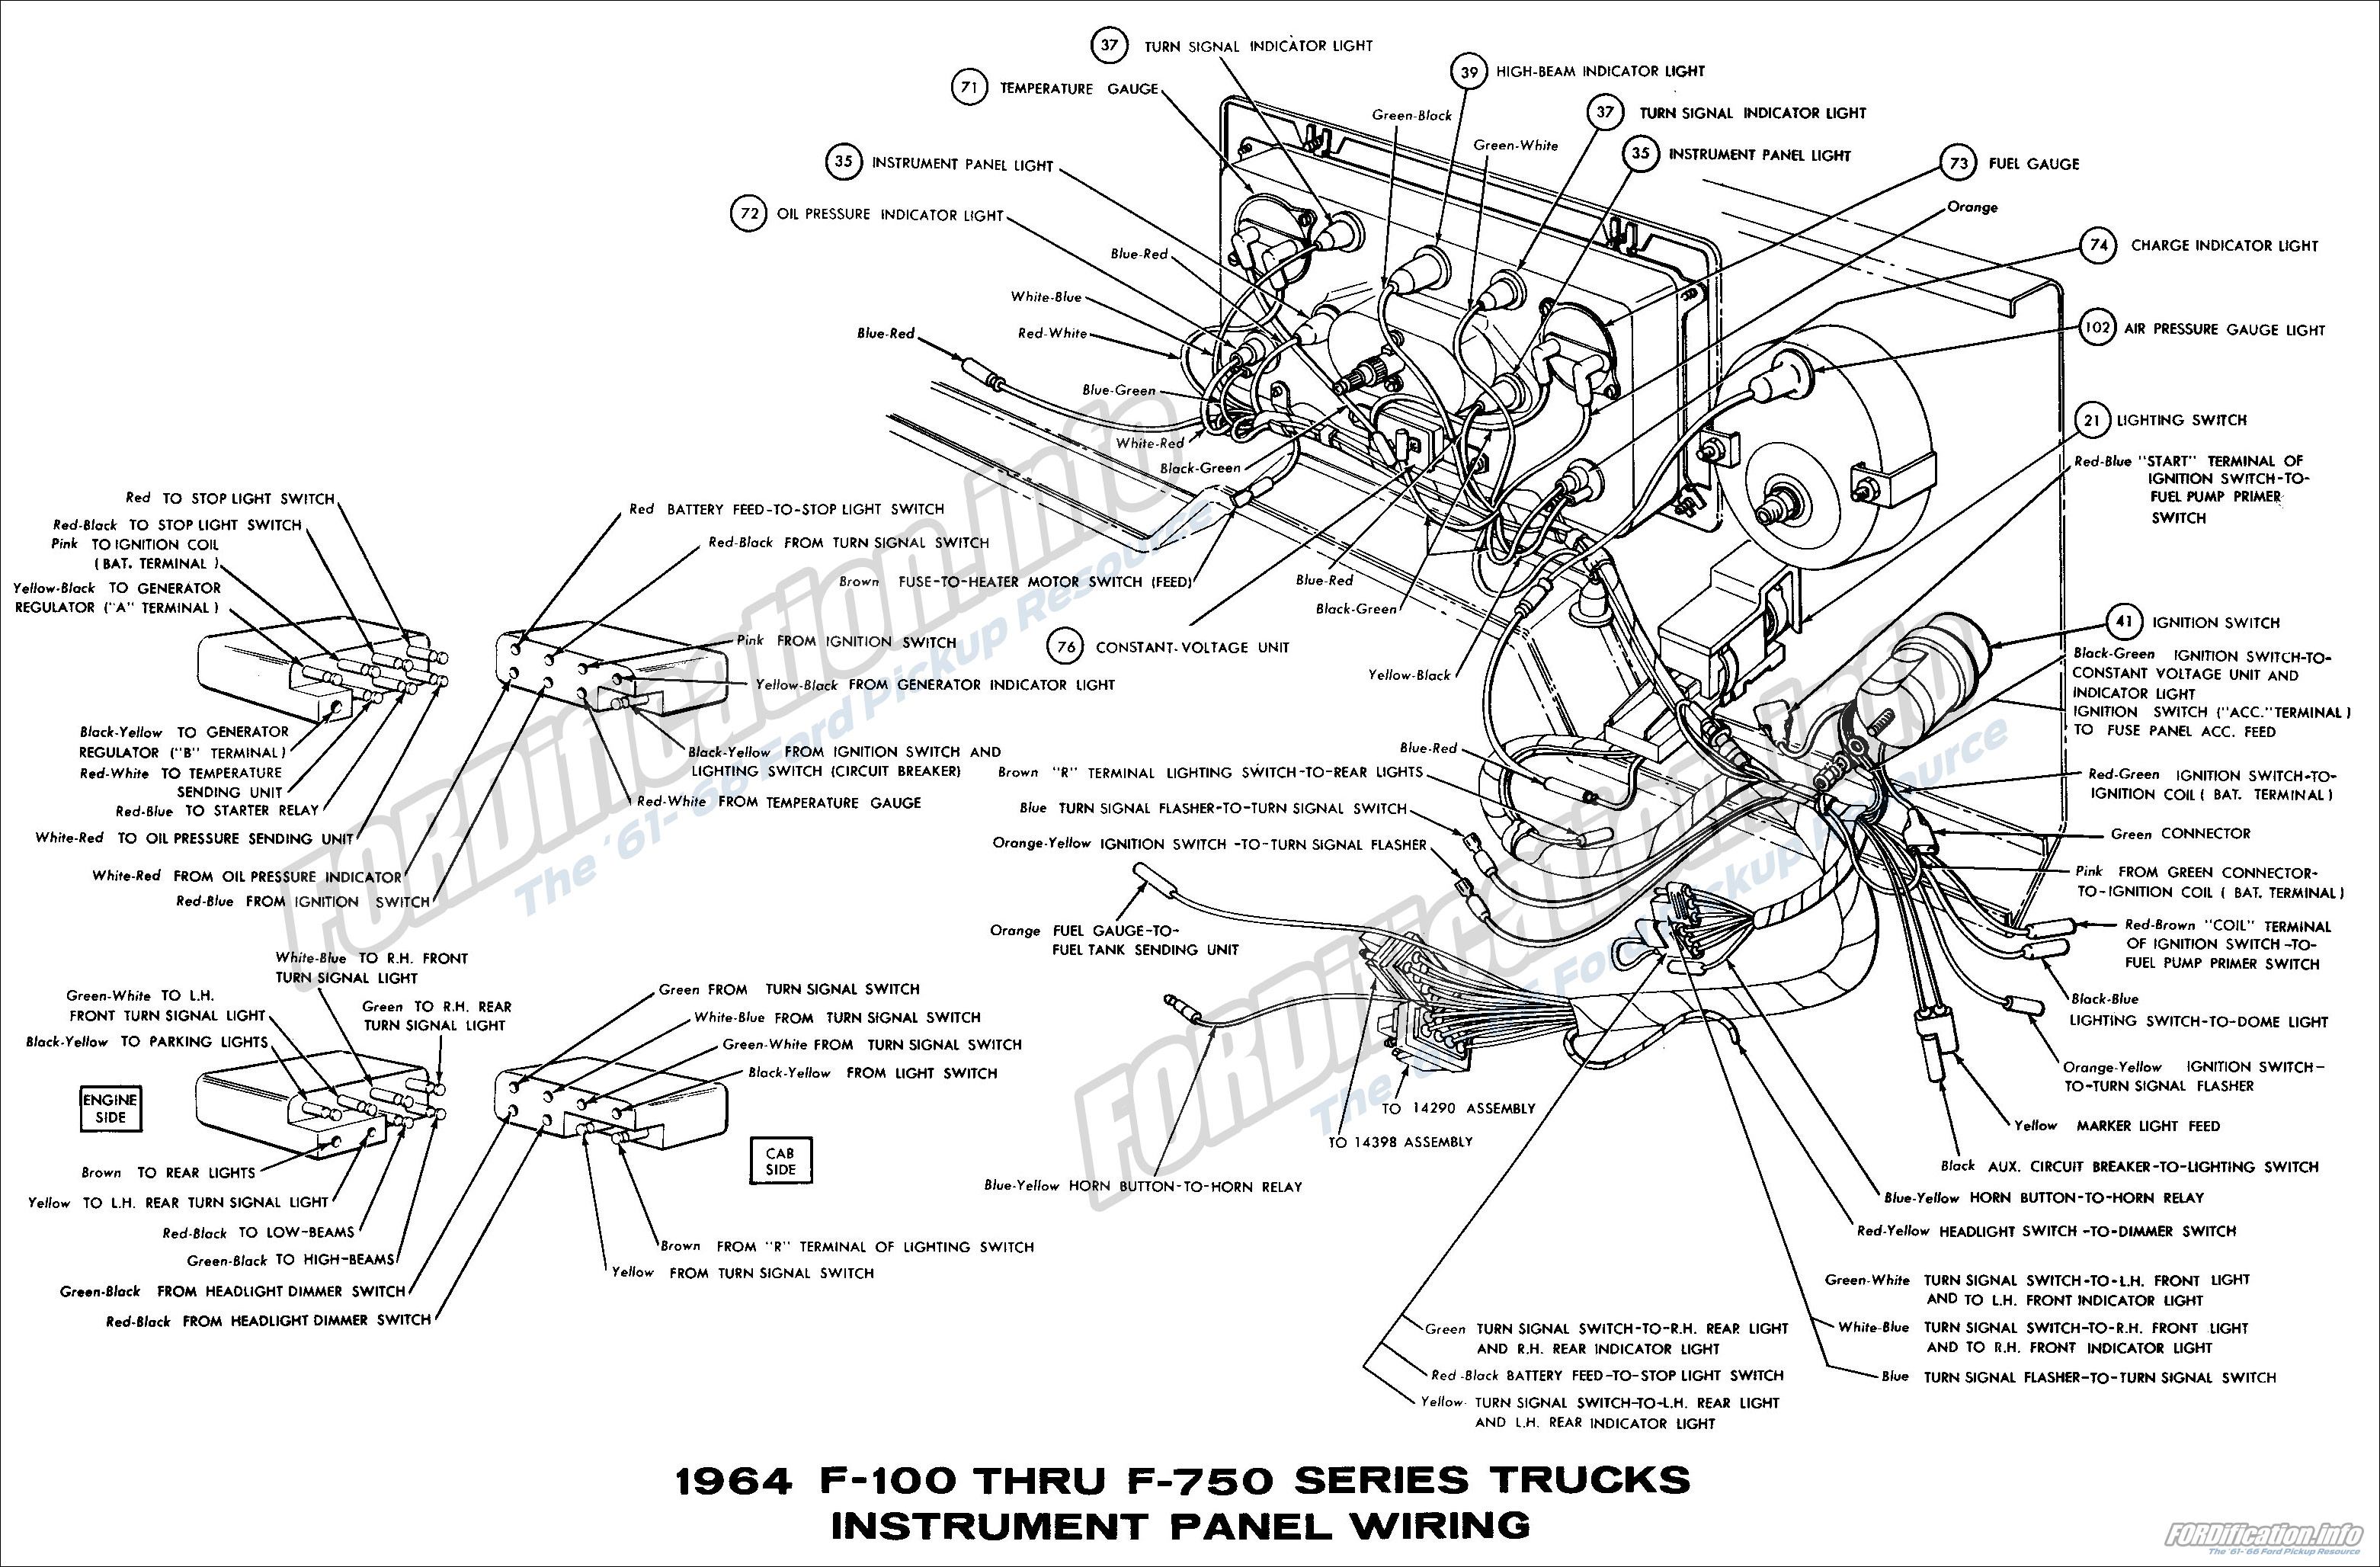 1964 ford ignition switch diagram veins and arteries in the neck truck wiring diagrams fordification info